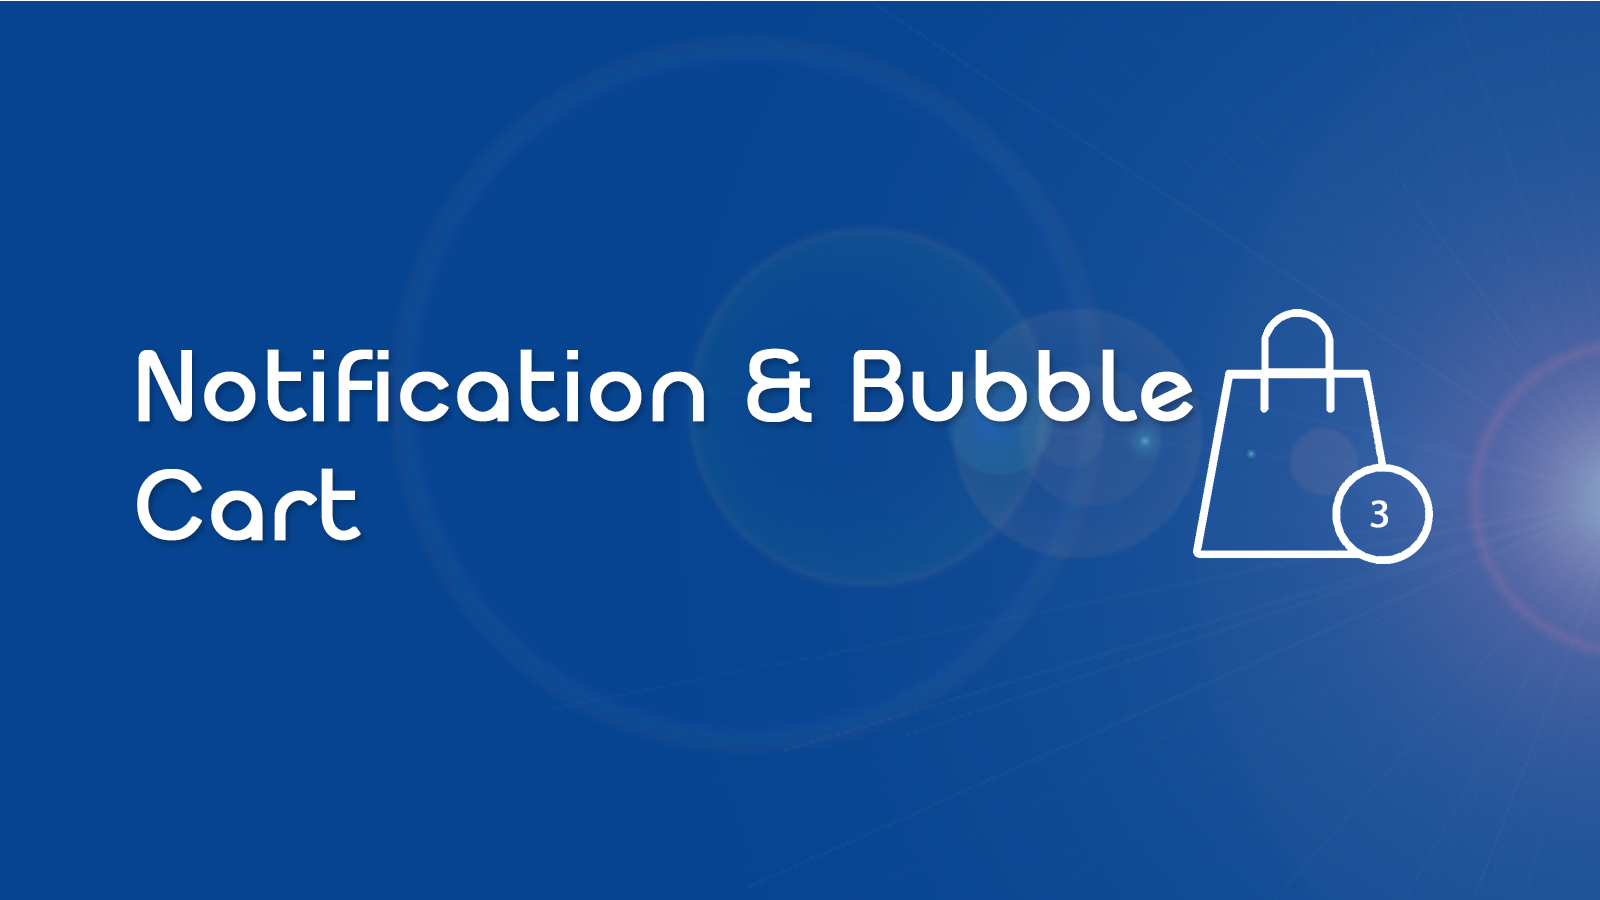 notification-bubble-cart